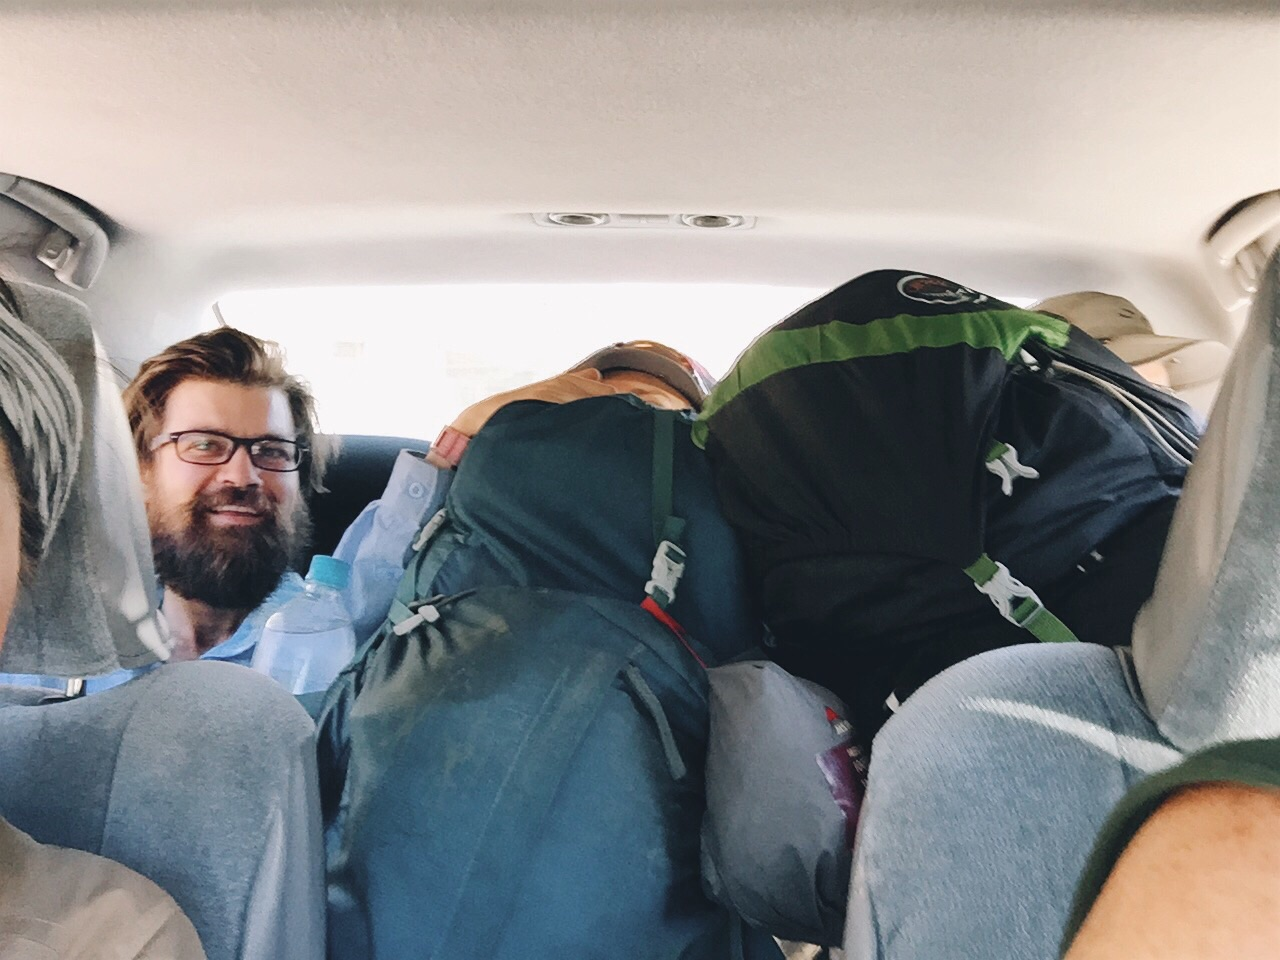 They all squished into the back of the car.